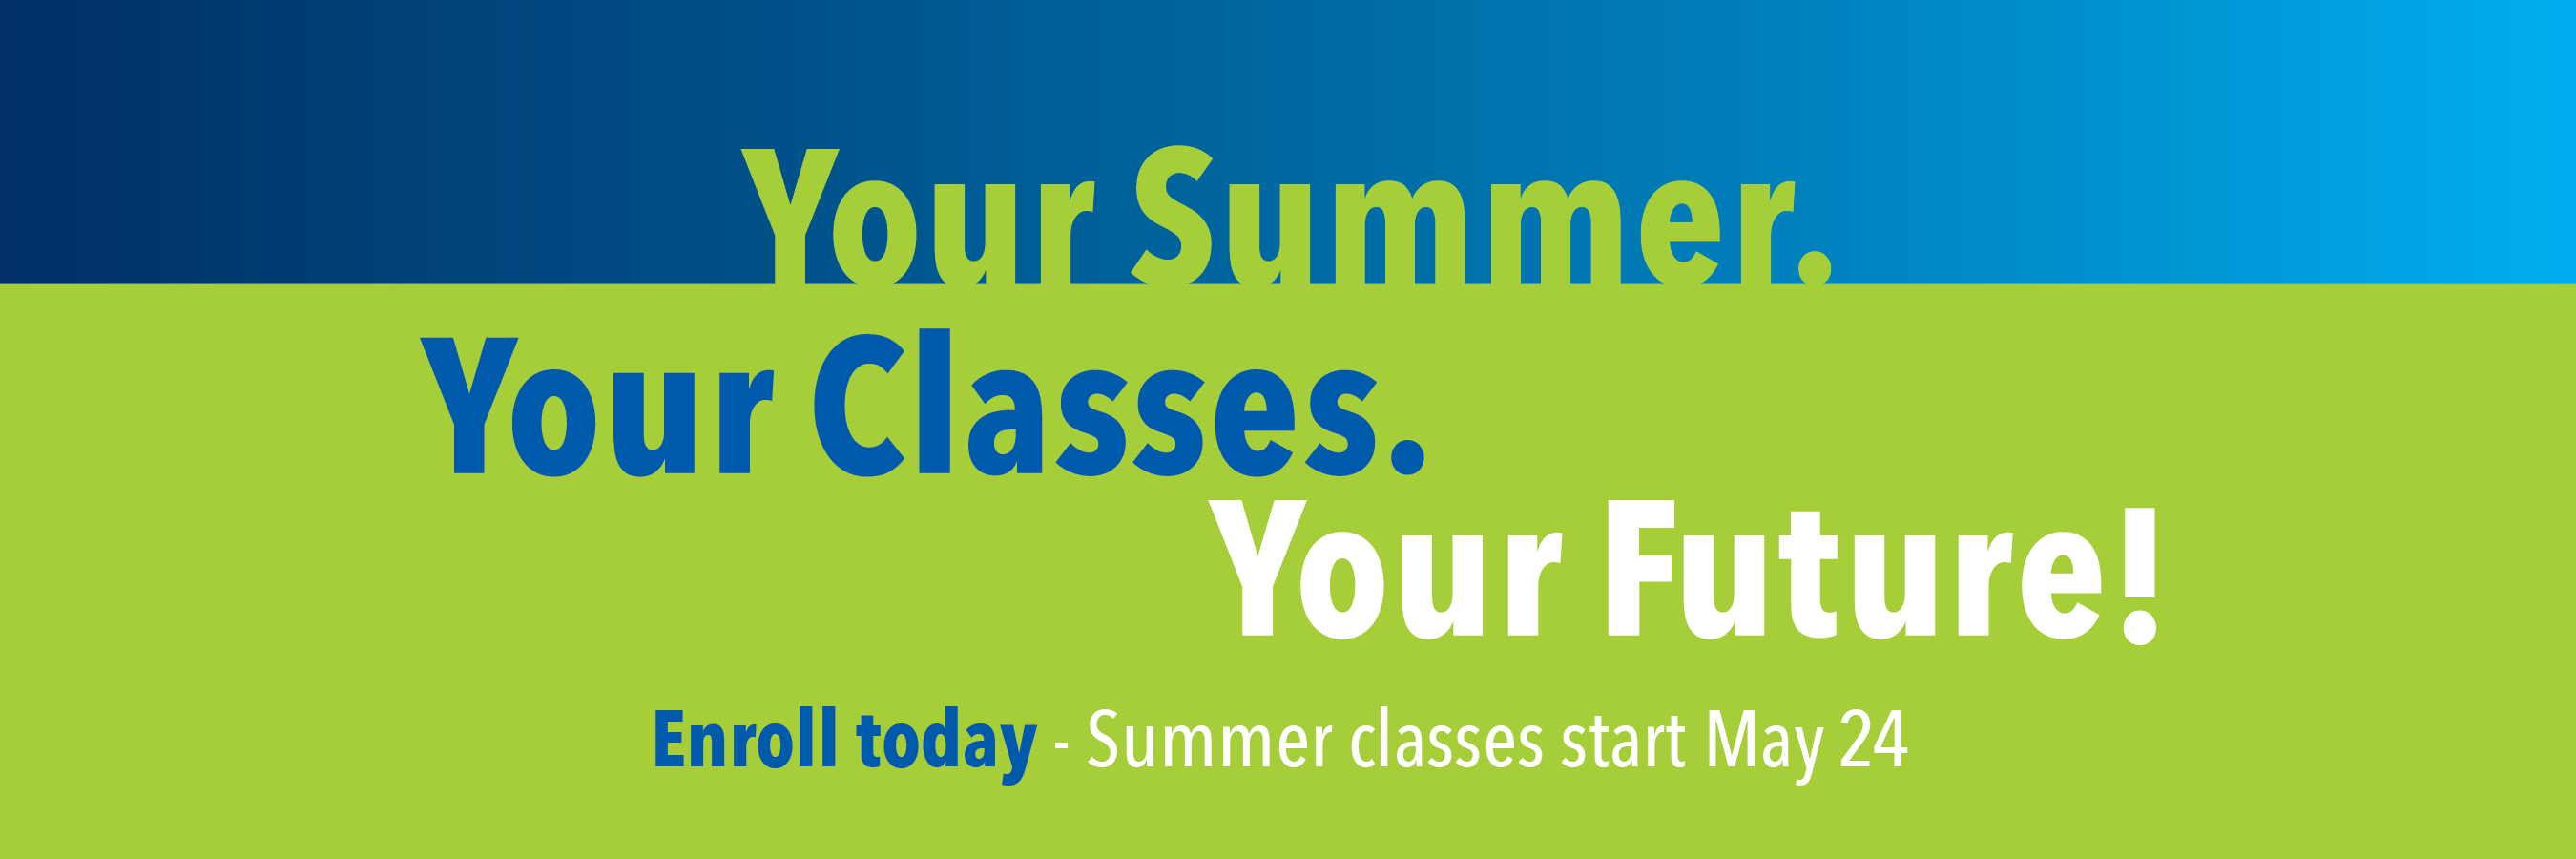 Your Summer. Your Classes. Your Future